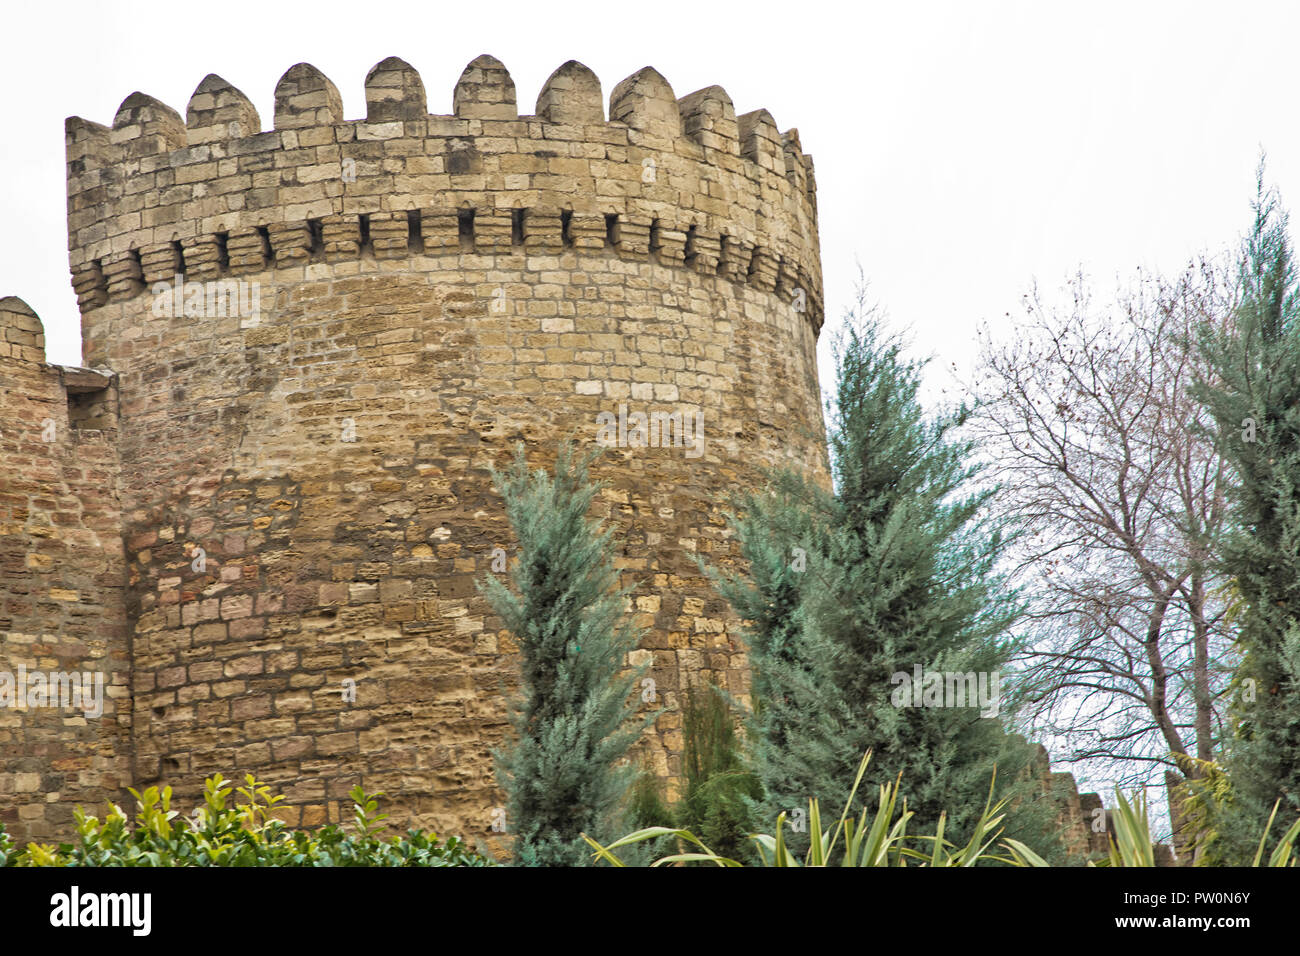 Gate of the old fortress, entrance to Baku old town. Baku, Azerbaijan. Walls of the Old City in Baku . Icheri Sheher is a UNESCO World Heritage Site - Stock Image